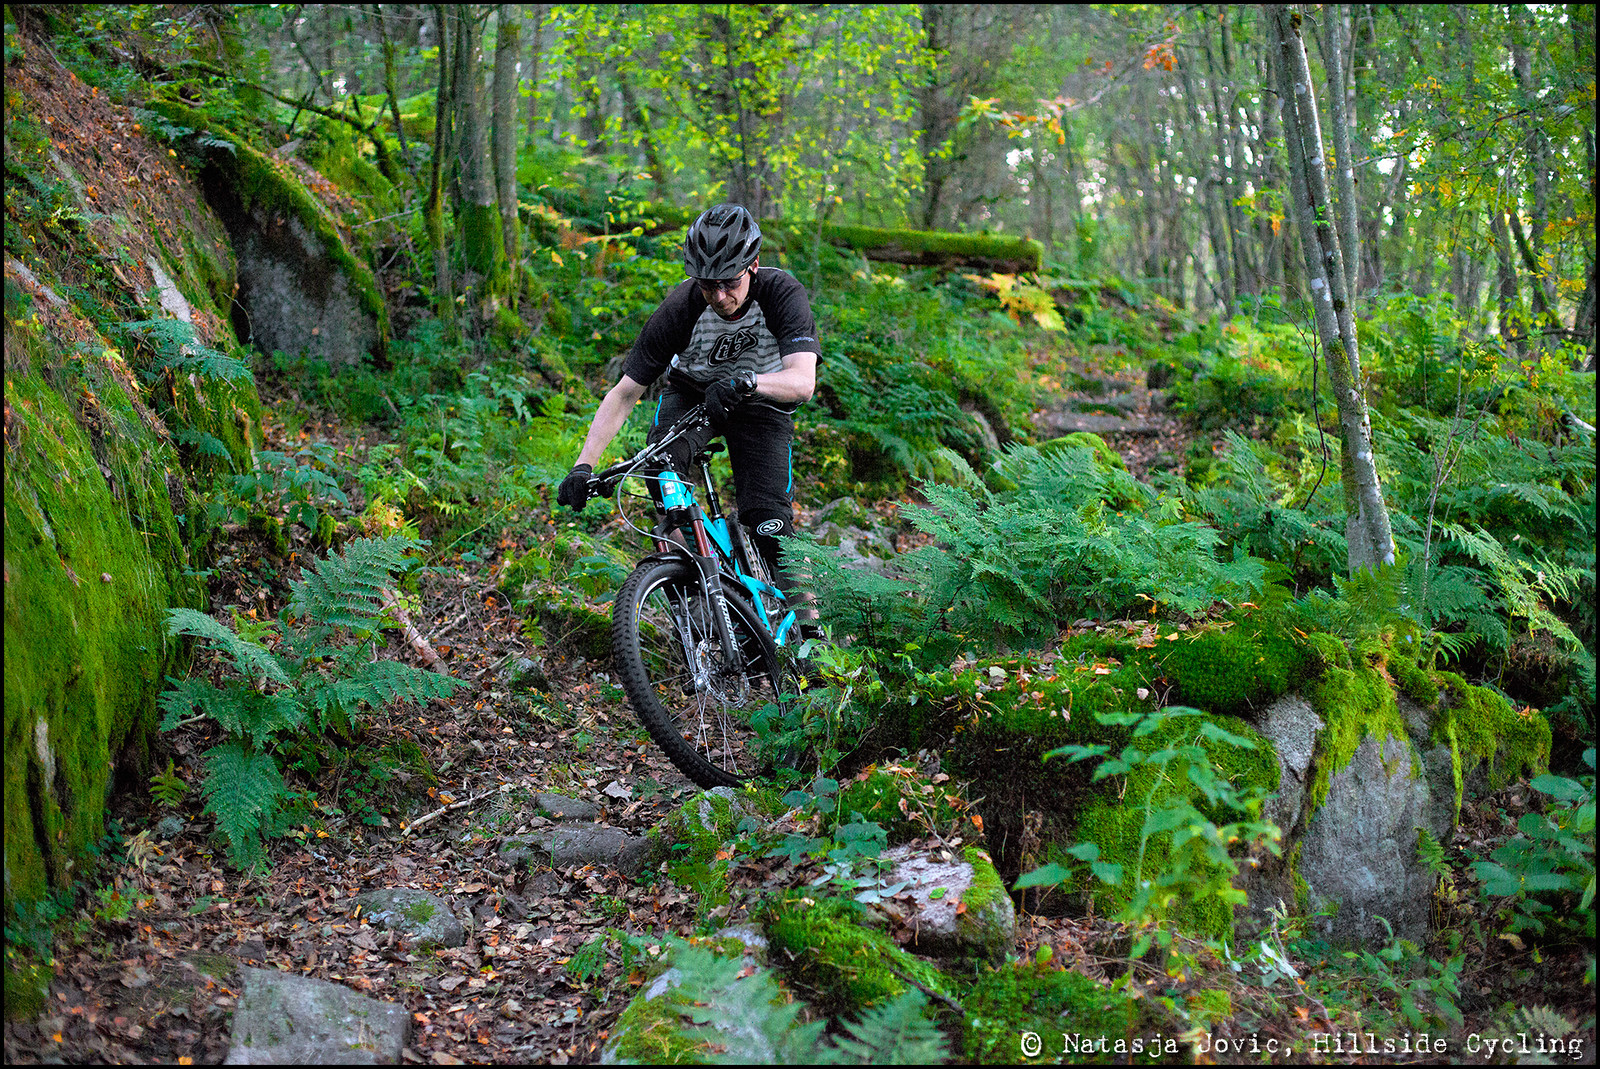 It's a jungle out there... - Hillside Cycling - Mountain Biking Pictures - Vital MTB